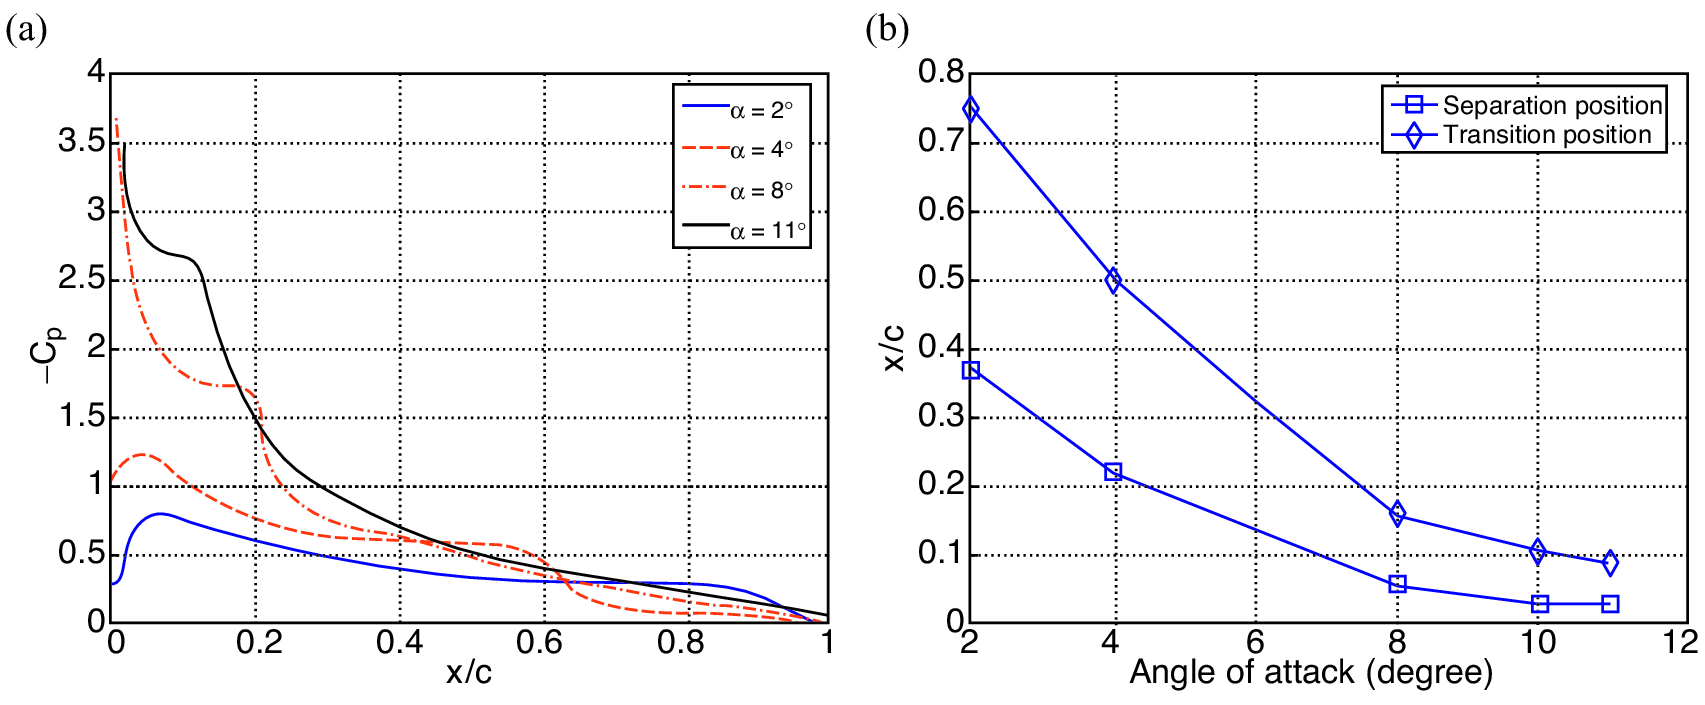 Rigid Fixed-Wing Aerodynamics (Chapter 2) - An Introduction